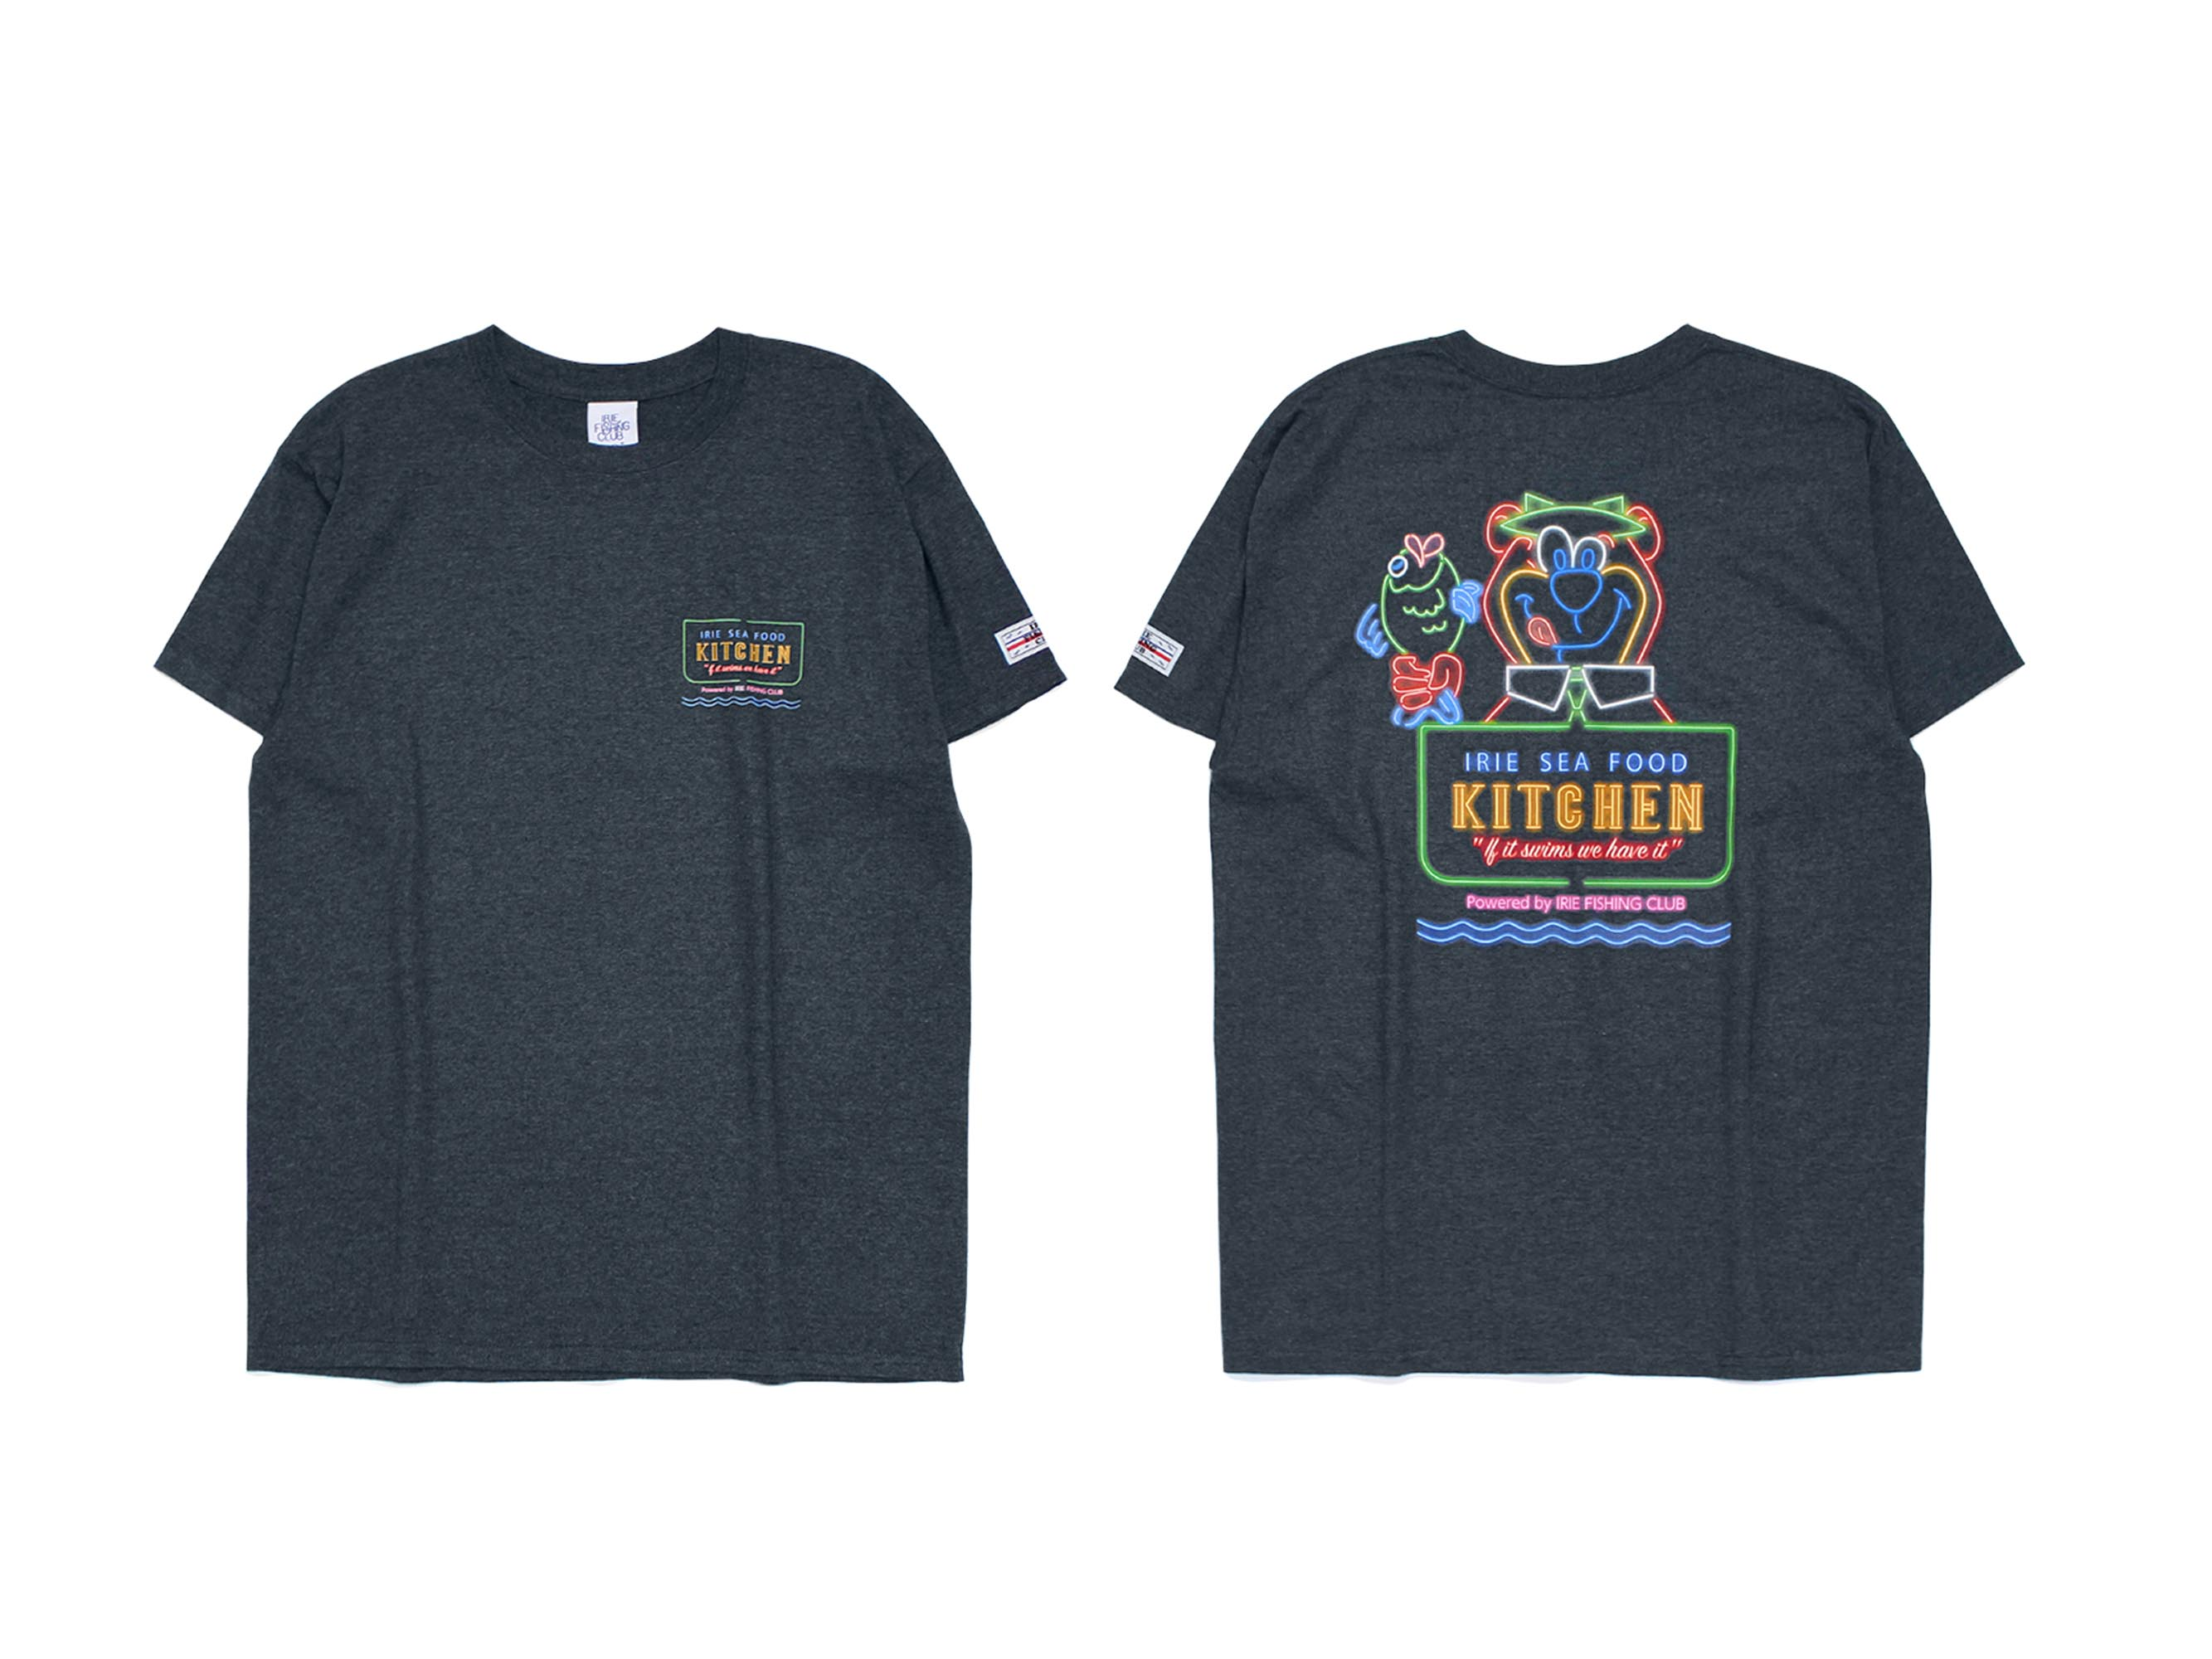 IRIE SEAFOOD KITCHEN TEE - IRIE FISHING CLUB